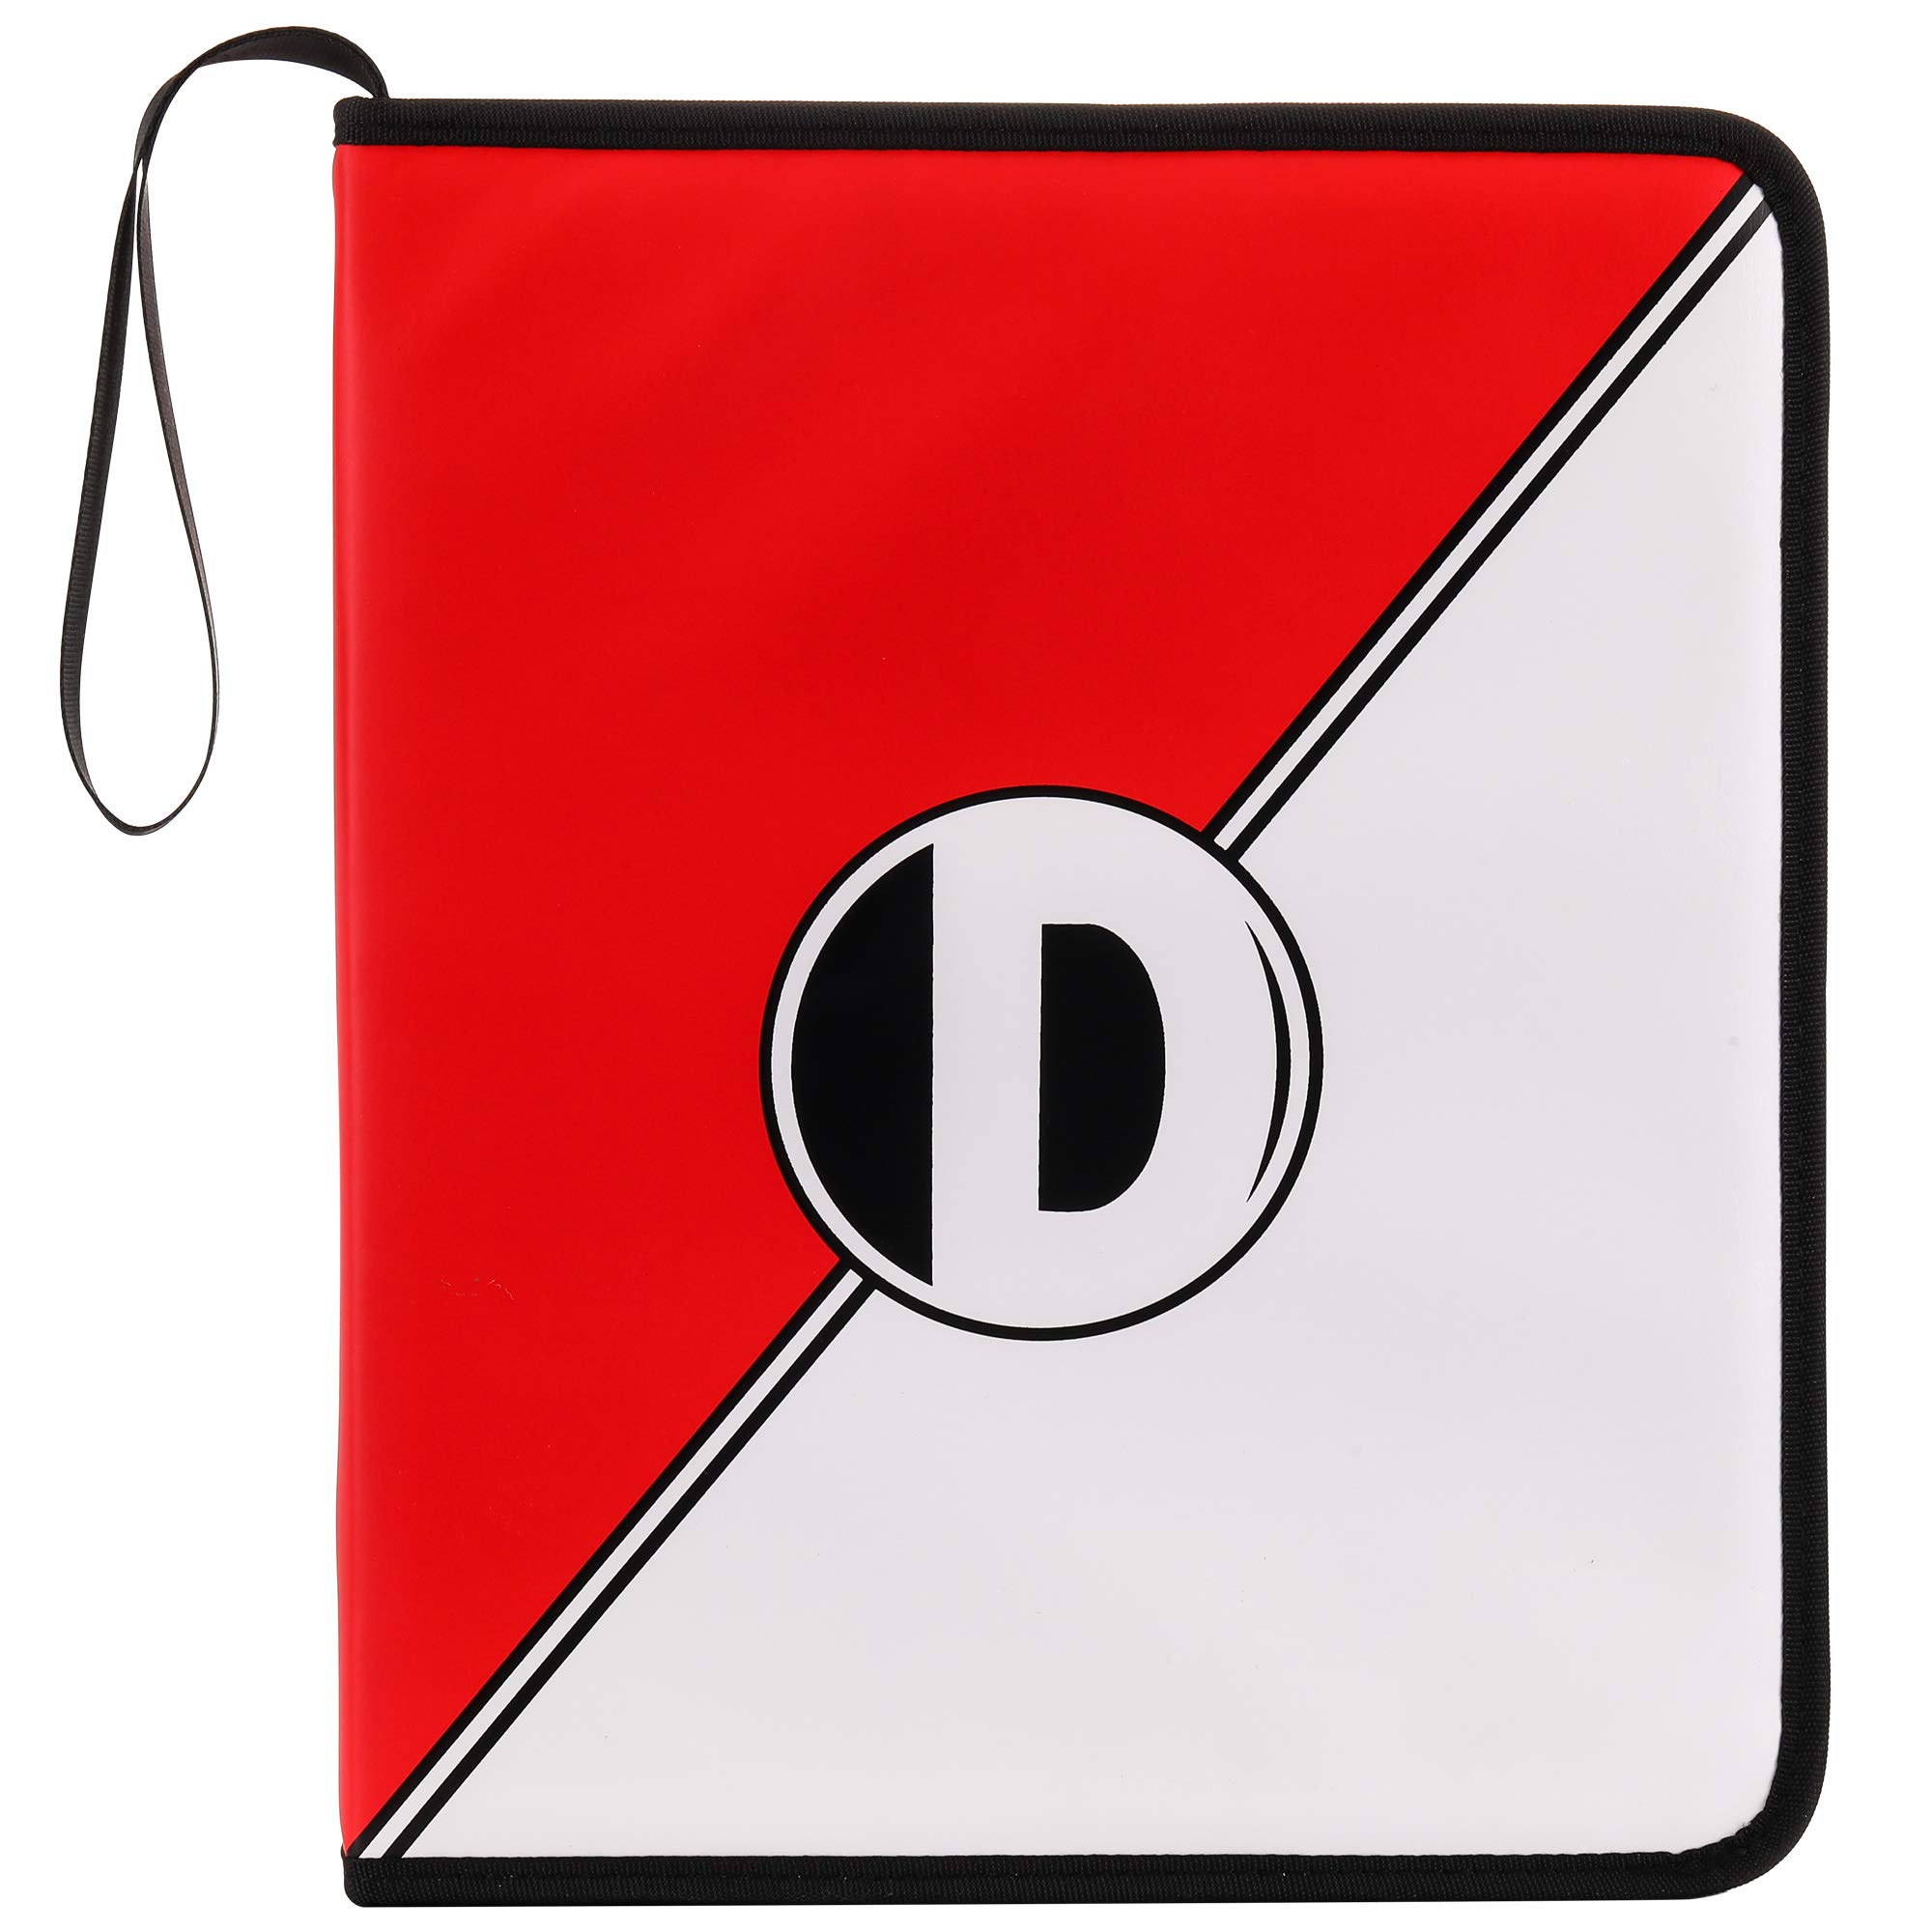 D DACCKIT Carrying Case Compatible with Pokemon Trading Cards, Cards Collectors Album with 30 Premium 9-Pocket Pages, Holds Up to 540 Cards(Red and White Version) by D DACCKIT (Image #2)